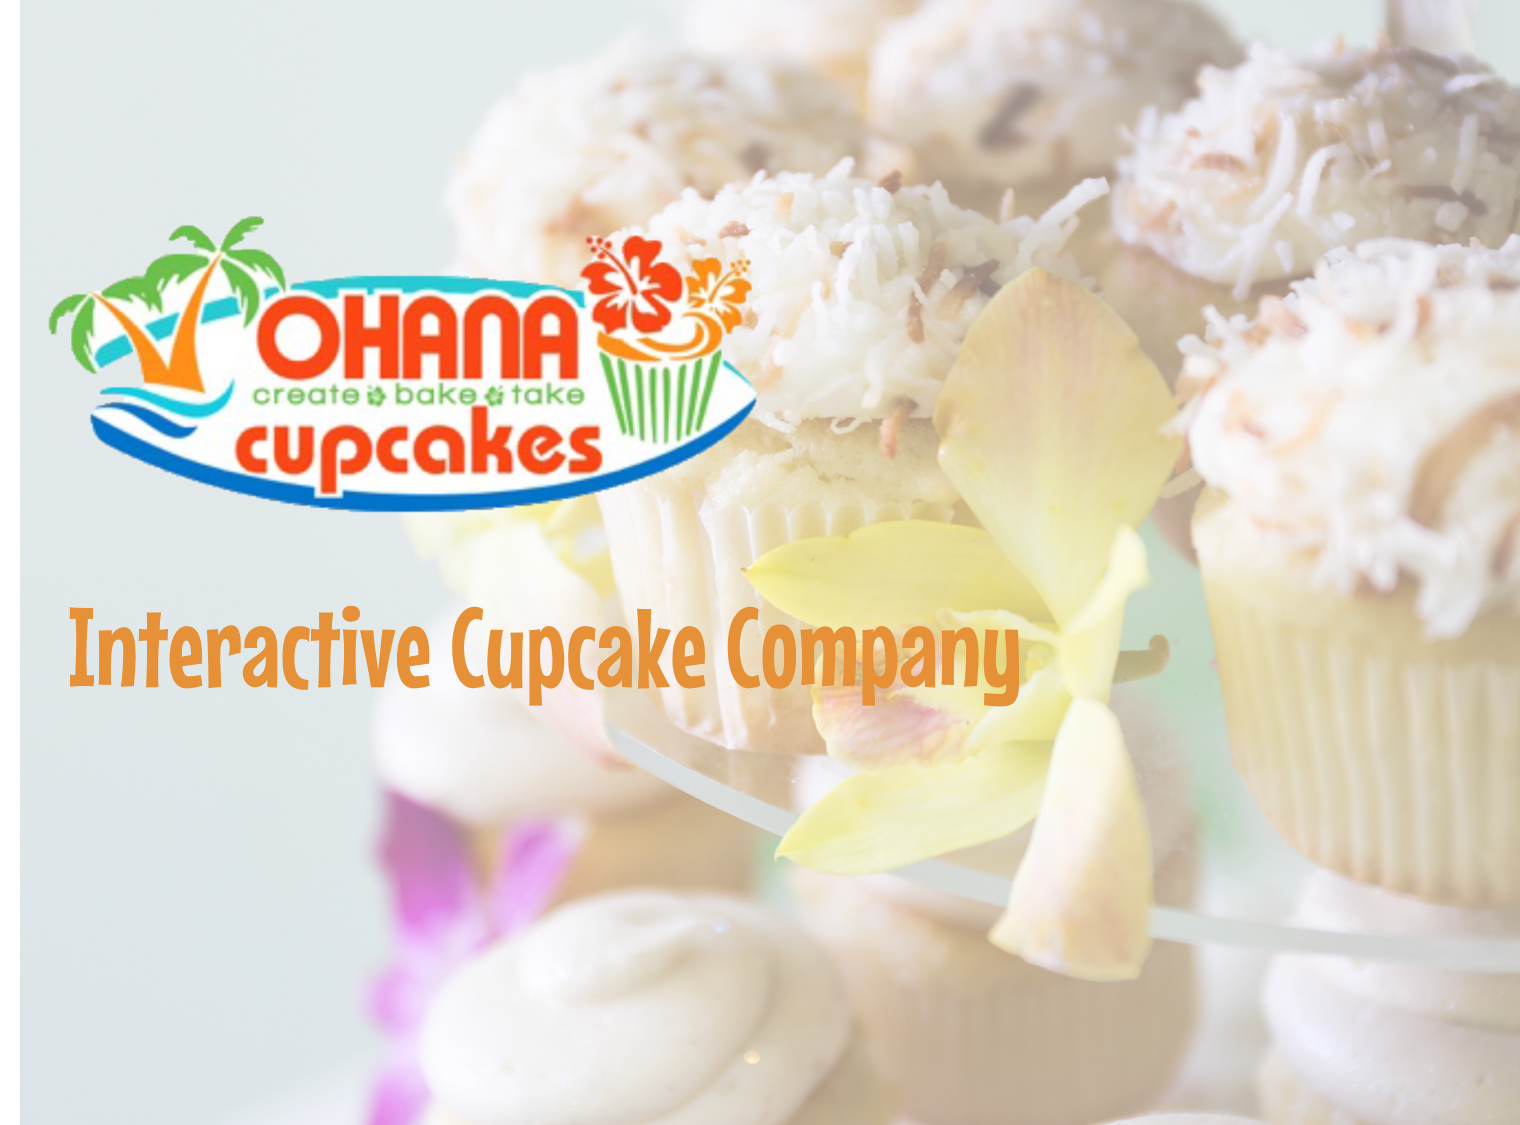 Ohana Cupcakes | Fundable - Crowdfunding for Small Businesses